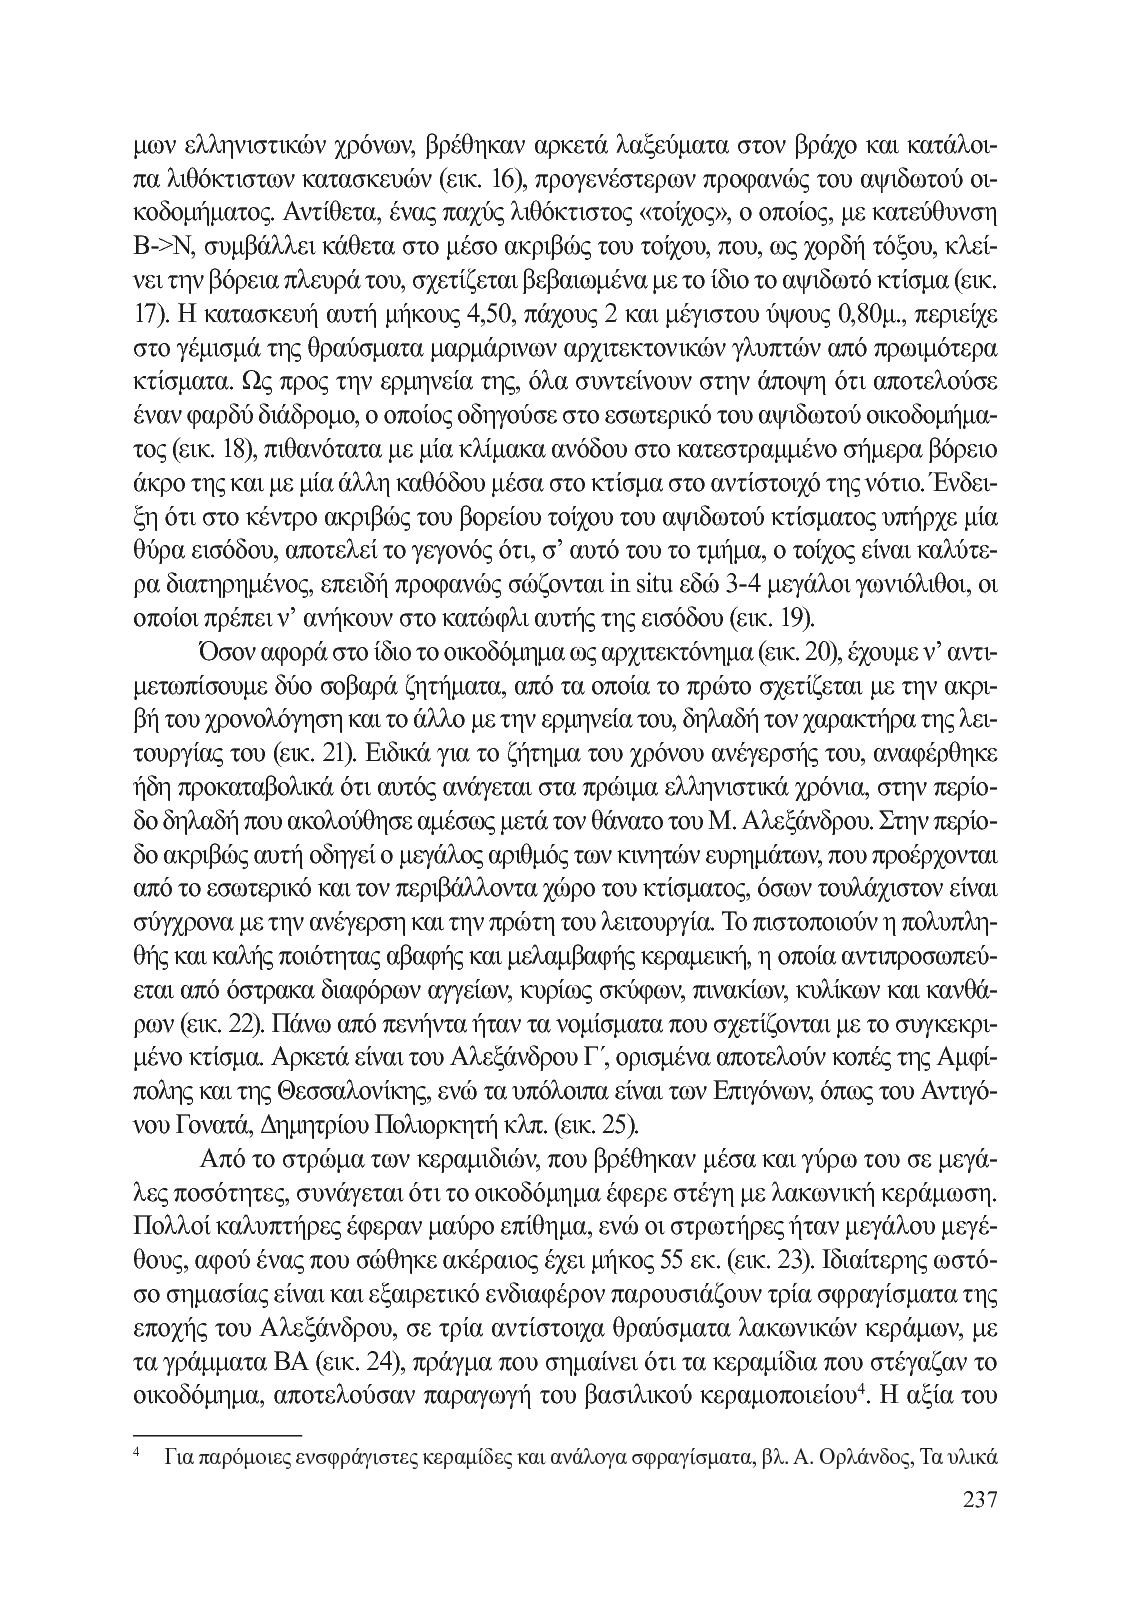 Page 237